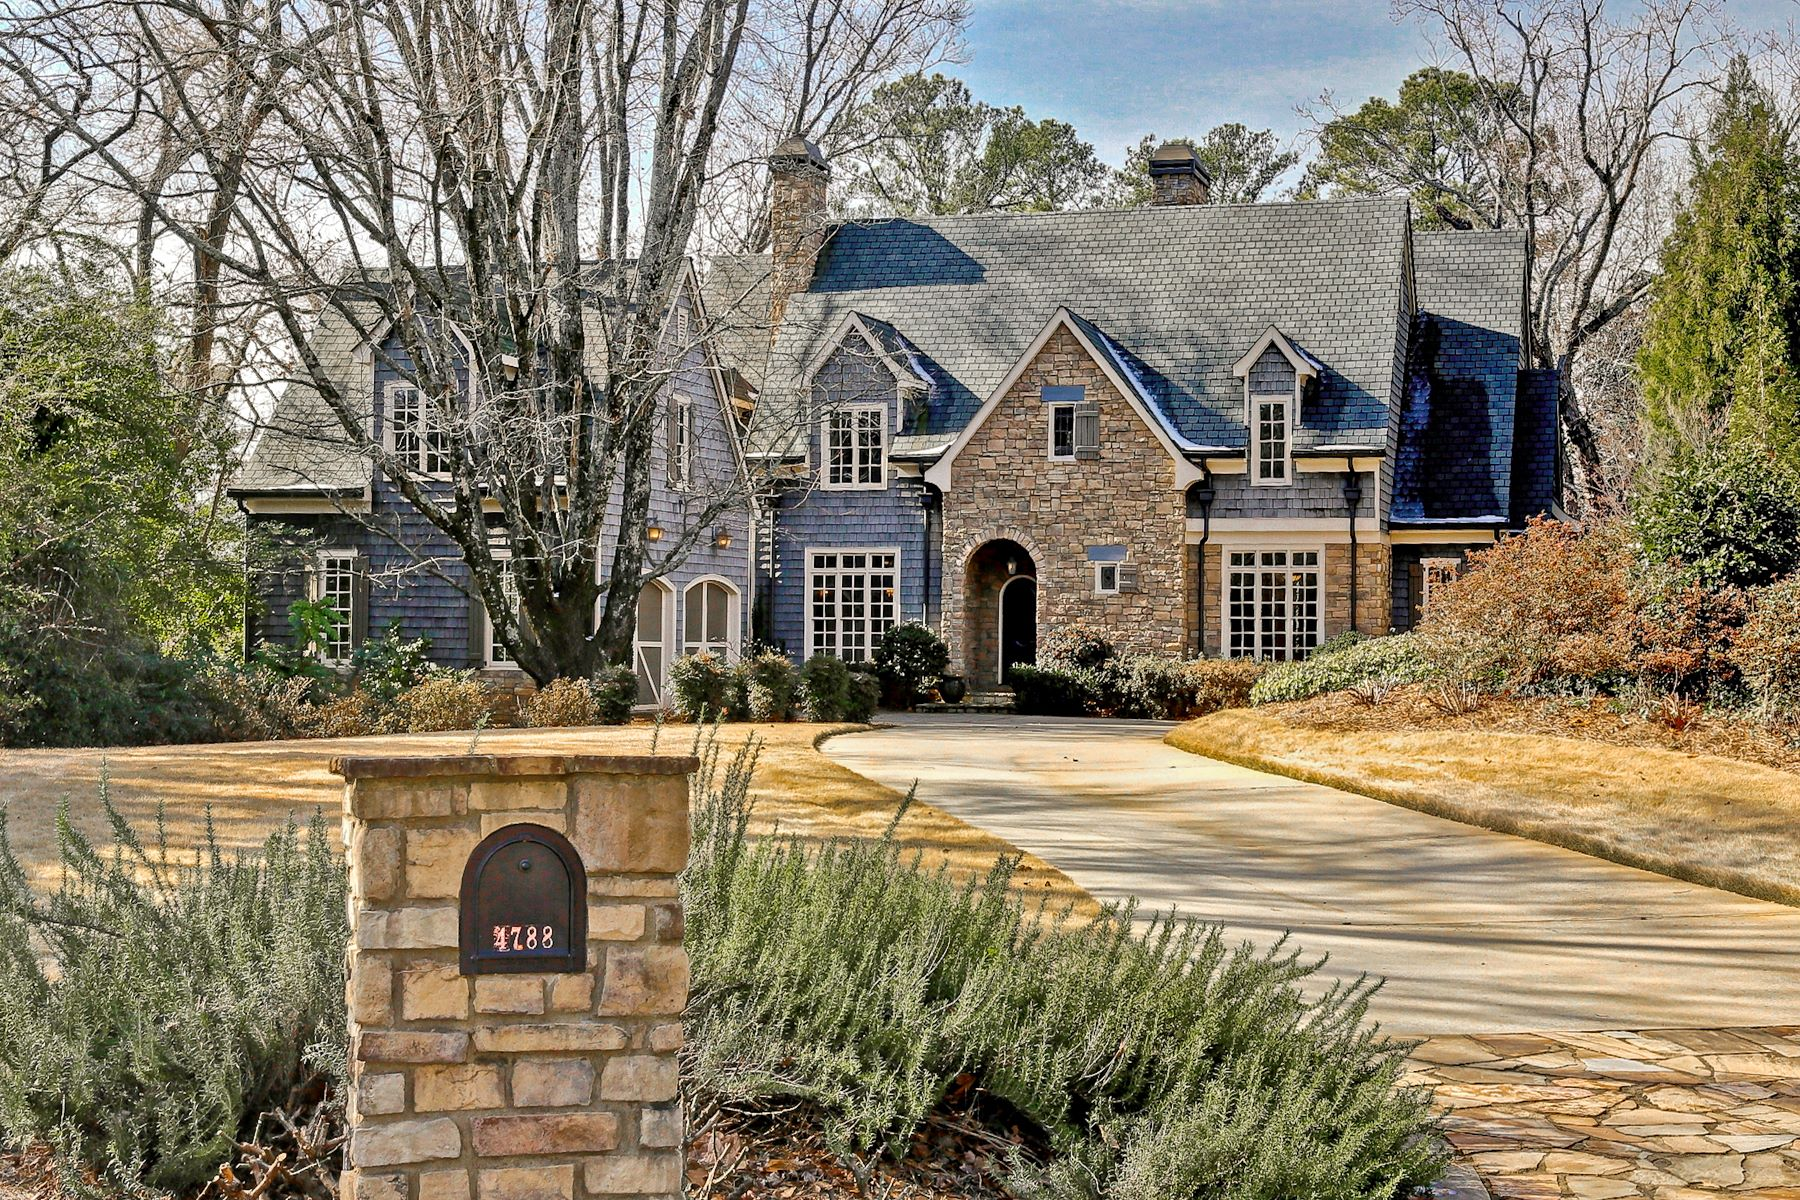 Single Family Home for Sale at Absolutely Stunning Custom Built Home In Chastain Park Area 4788 Dudley Lane Atlanta, Georgia, 30327 United States